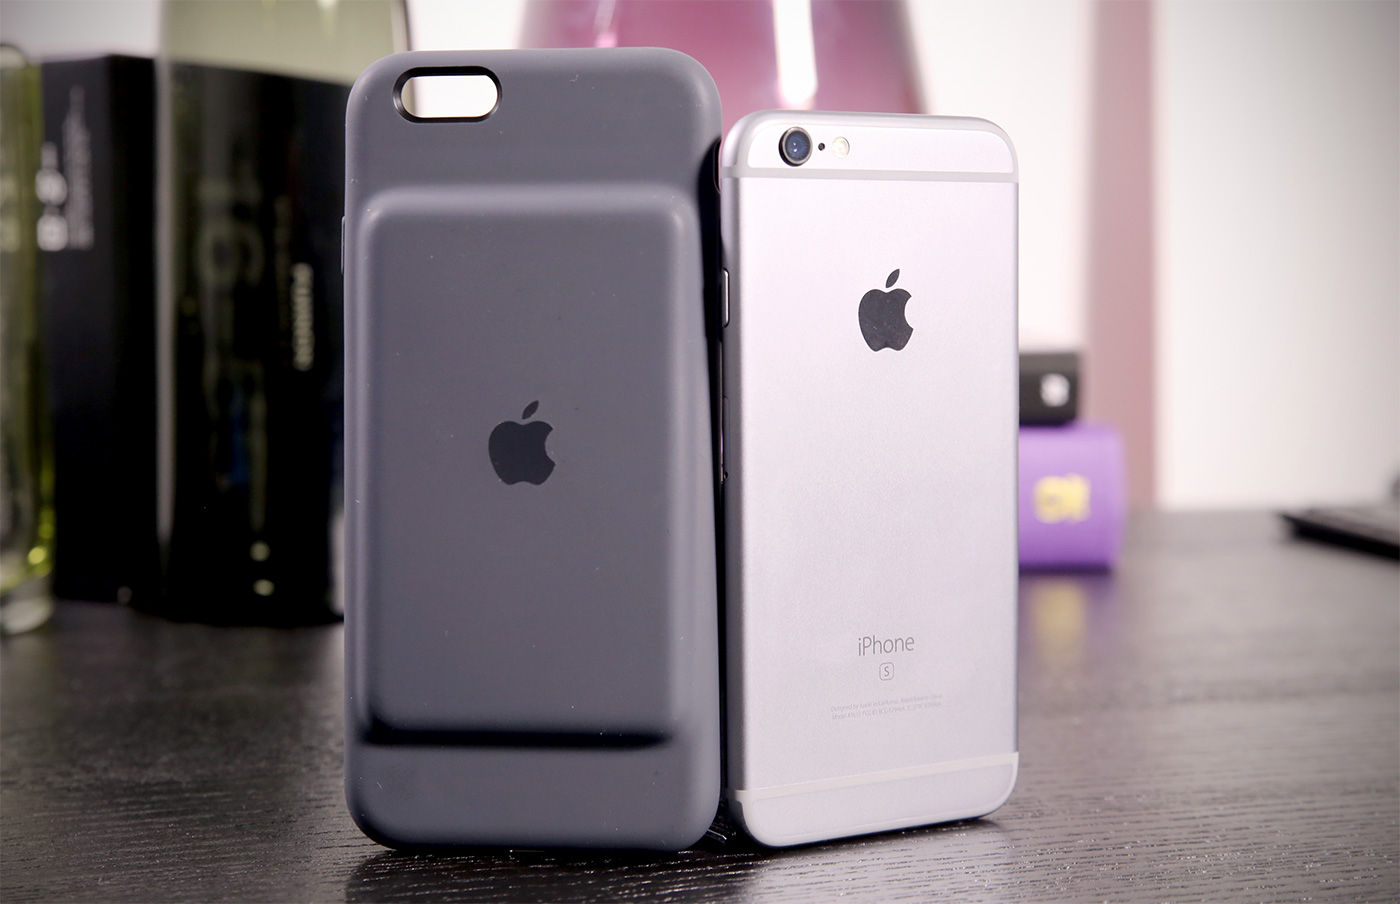 casing-iphone-unik (4)